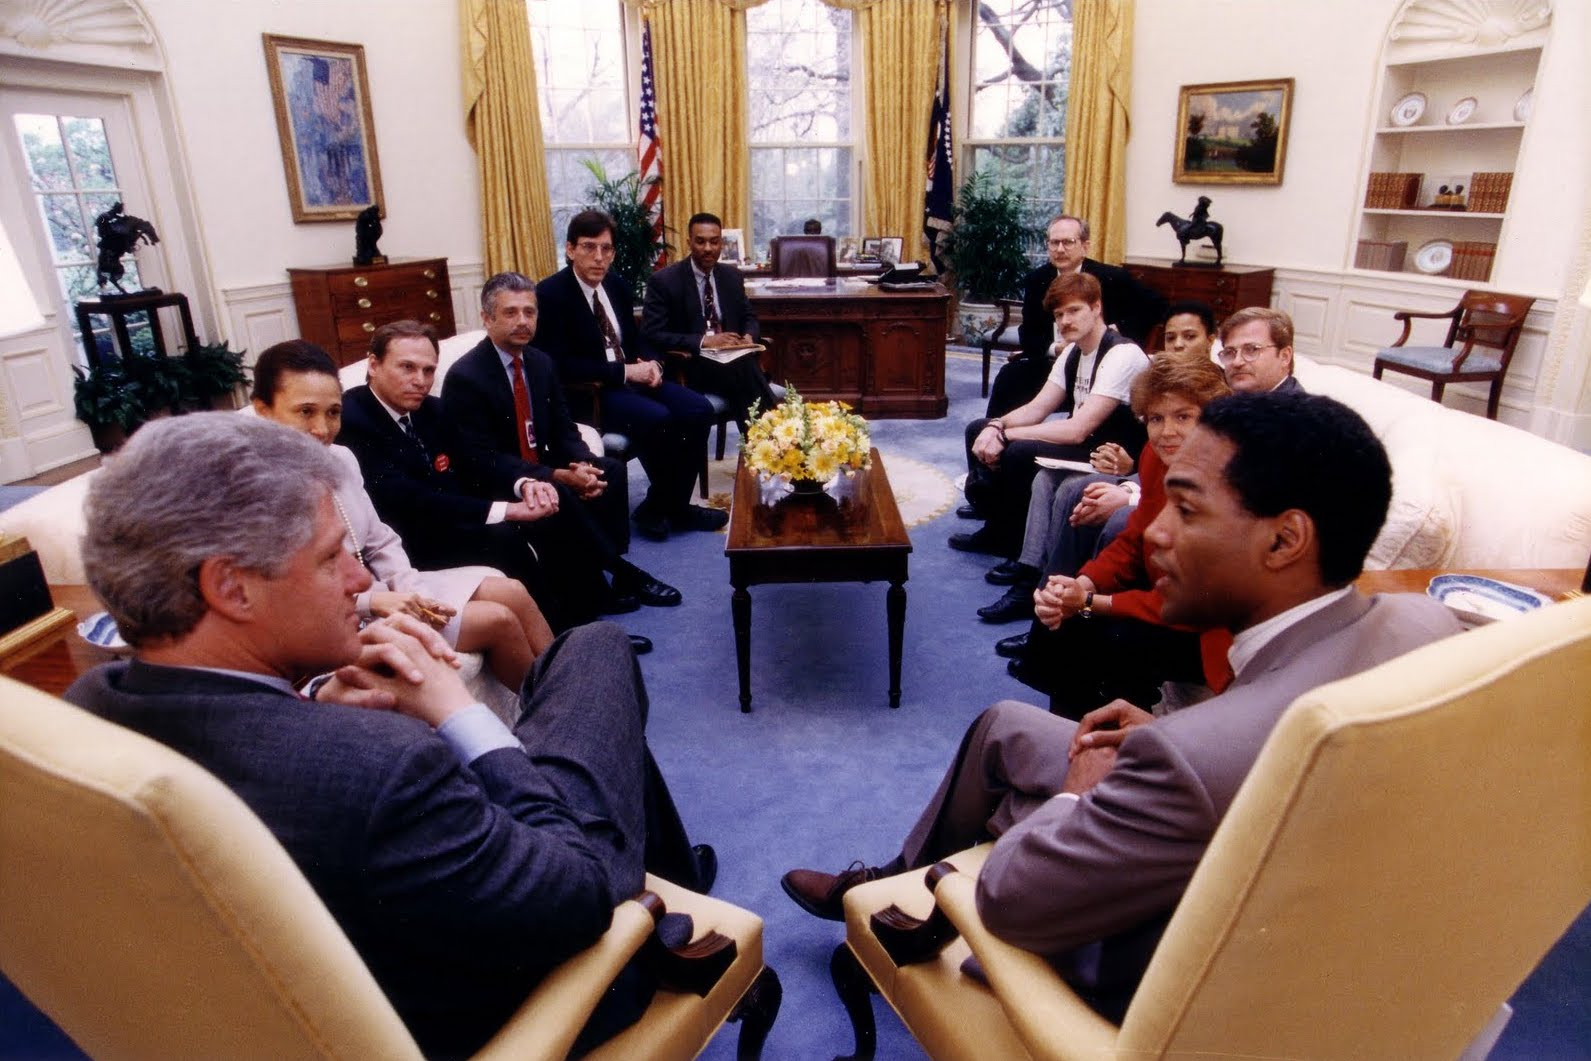 President Bill Clinton holds an historic, first-ever meeting with leaders of the LGBTQ community.